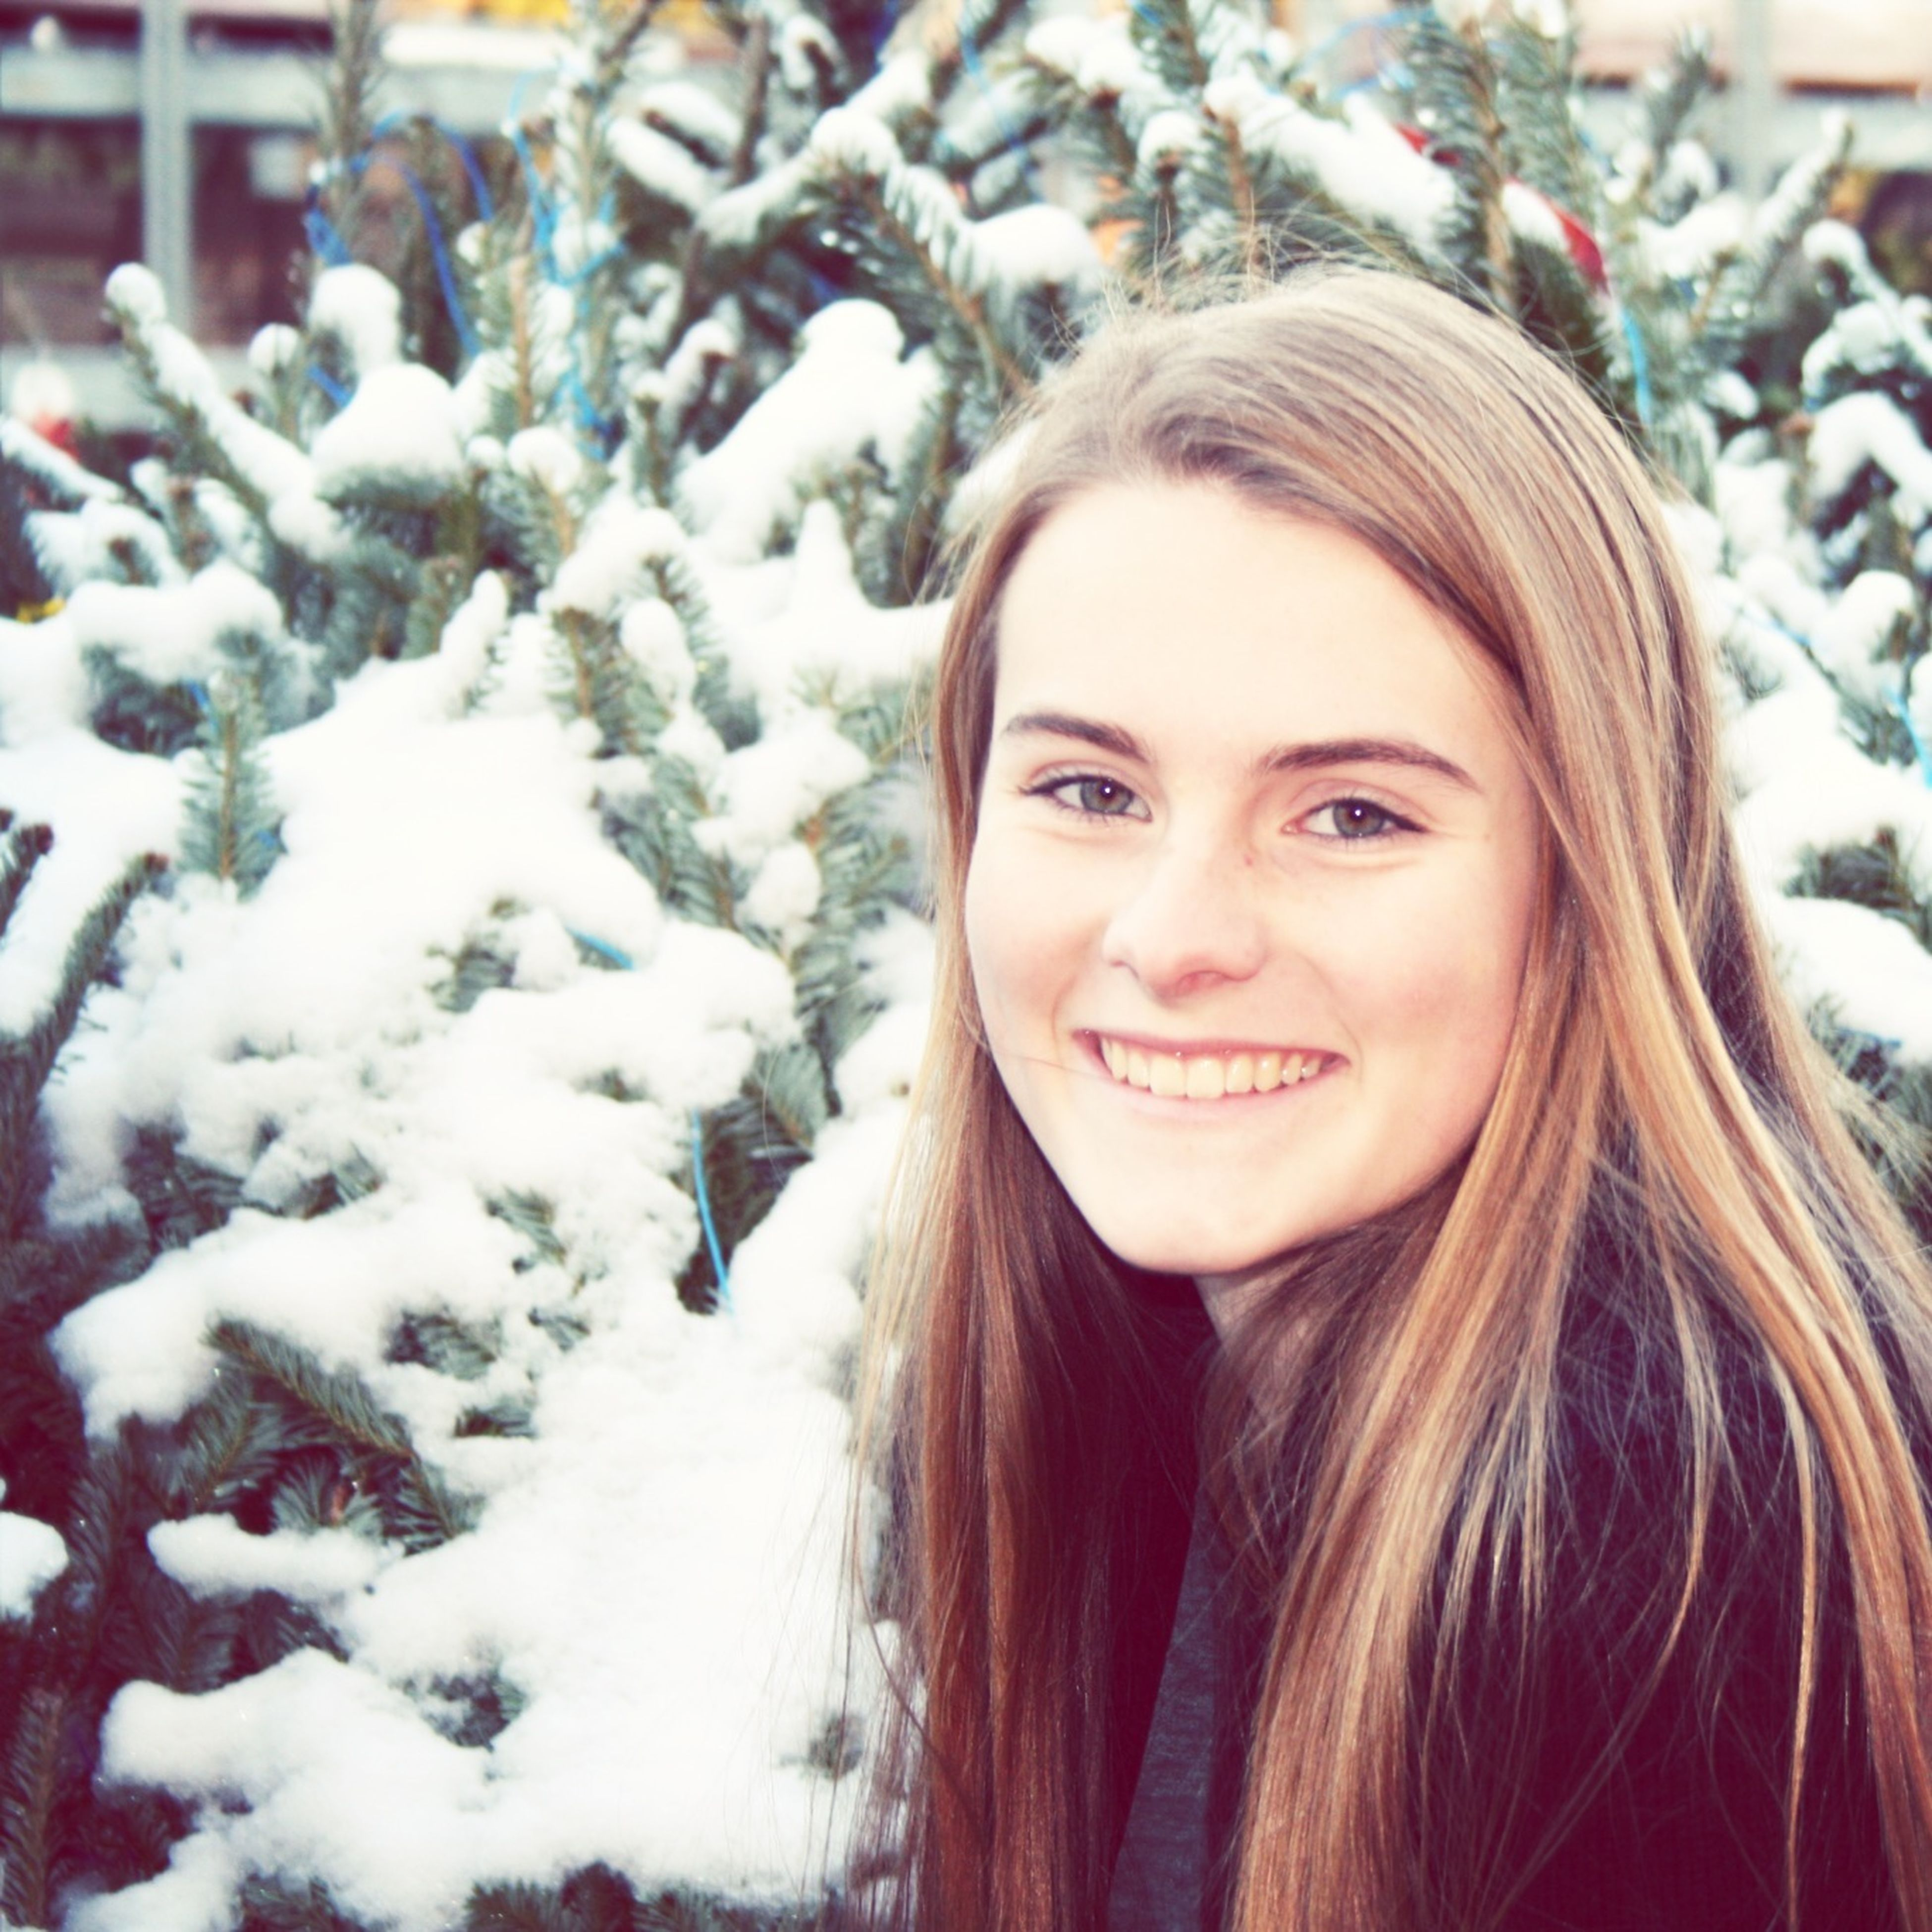 portrait, looking at camera, young women, long hair, person, lifestyles, winter, headshot, young adult, leisure activity, front view, smiling, focus on foreground, snow, cold temperature, season, warm clothing